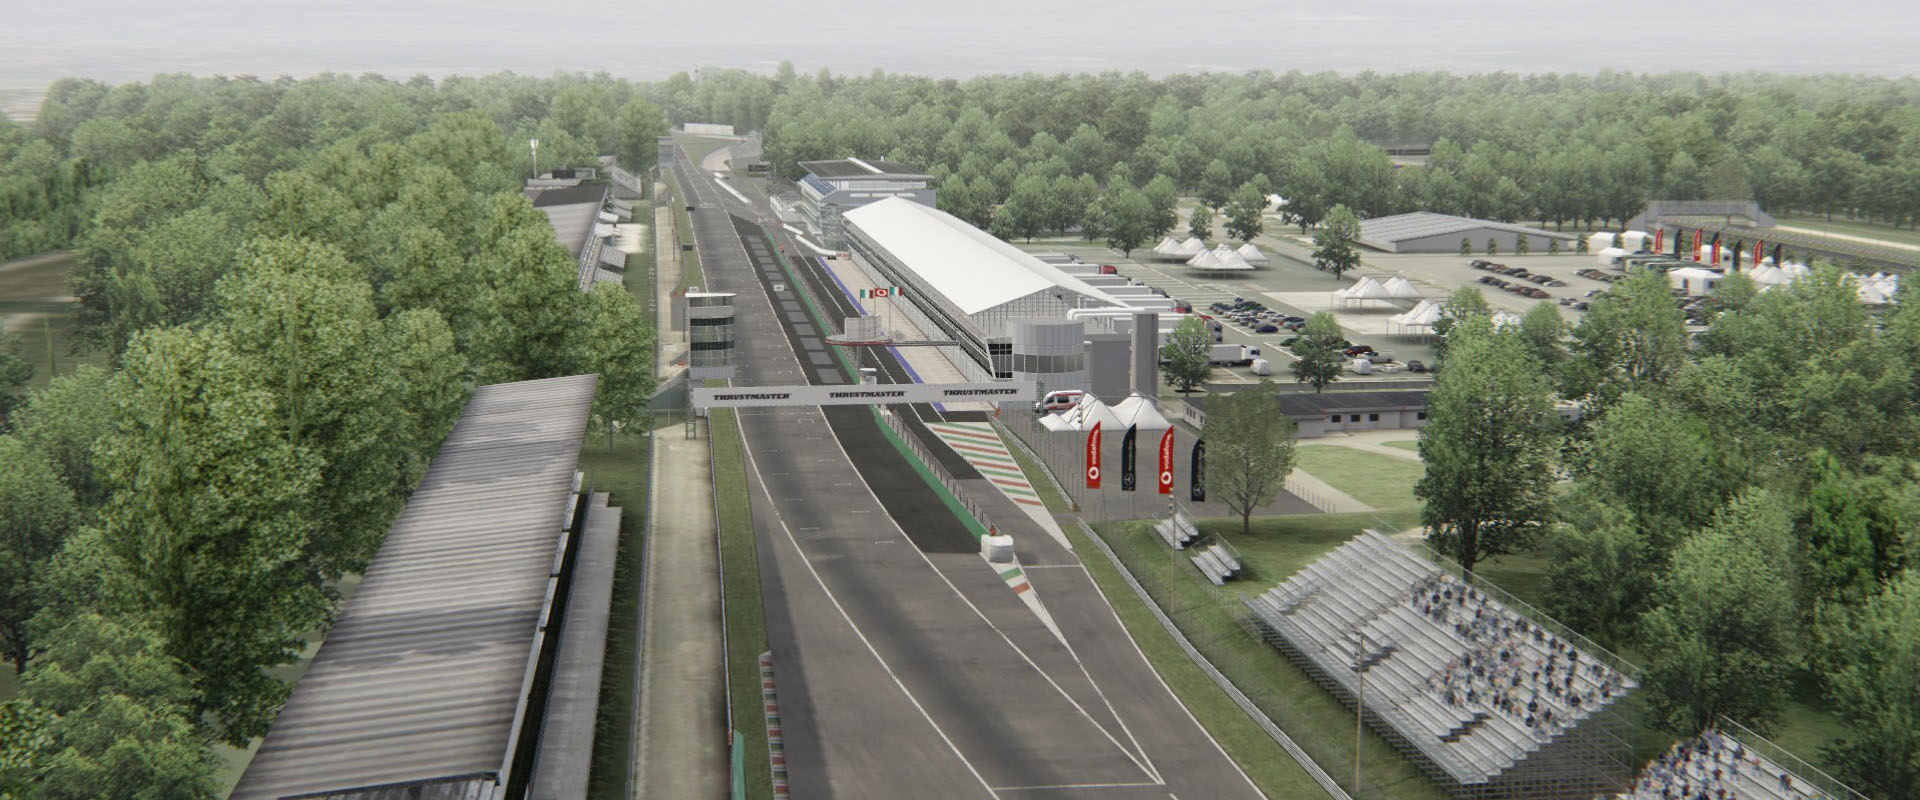 Monza Preview